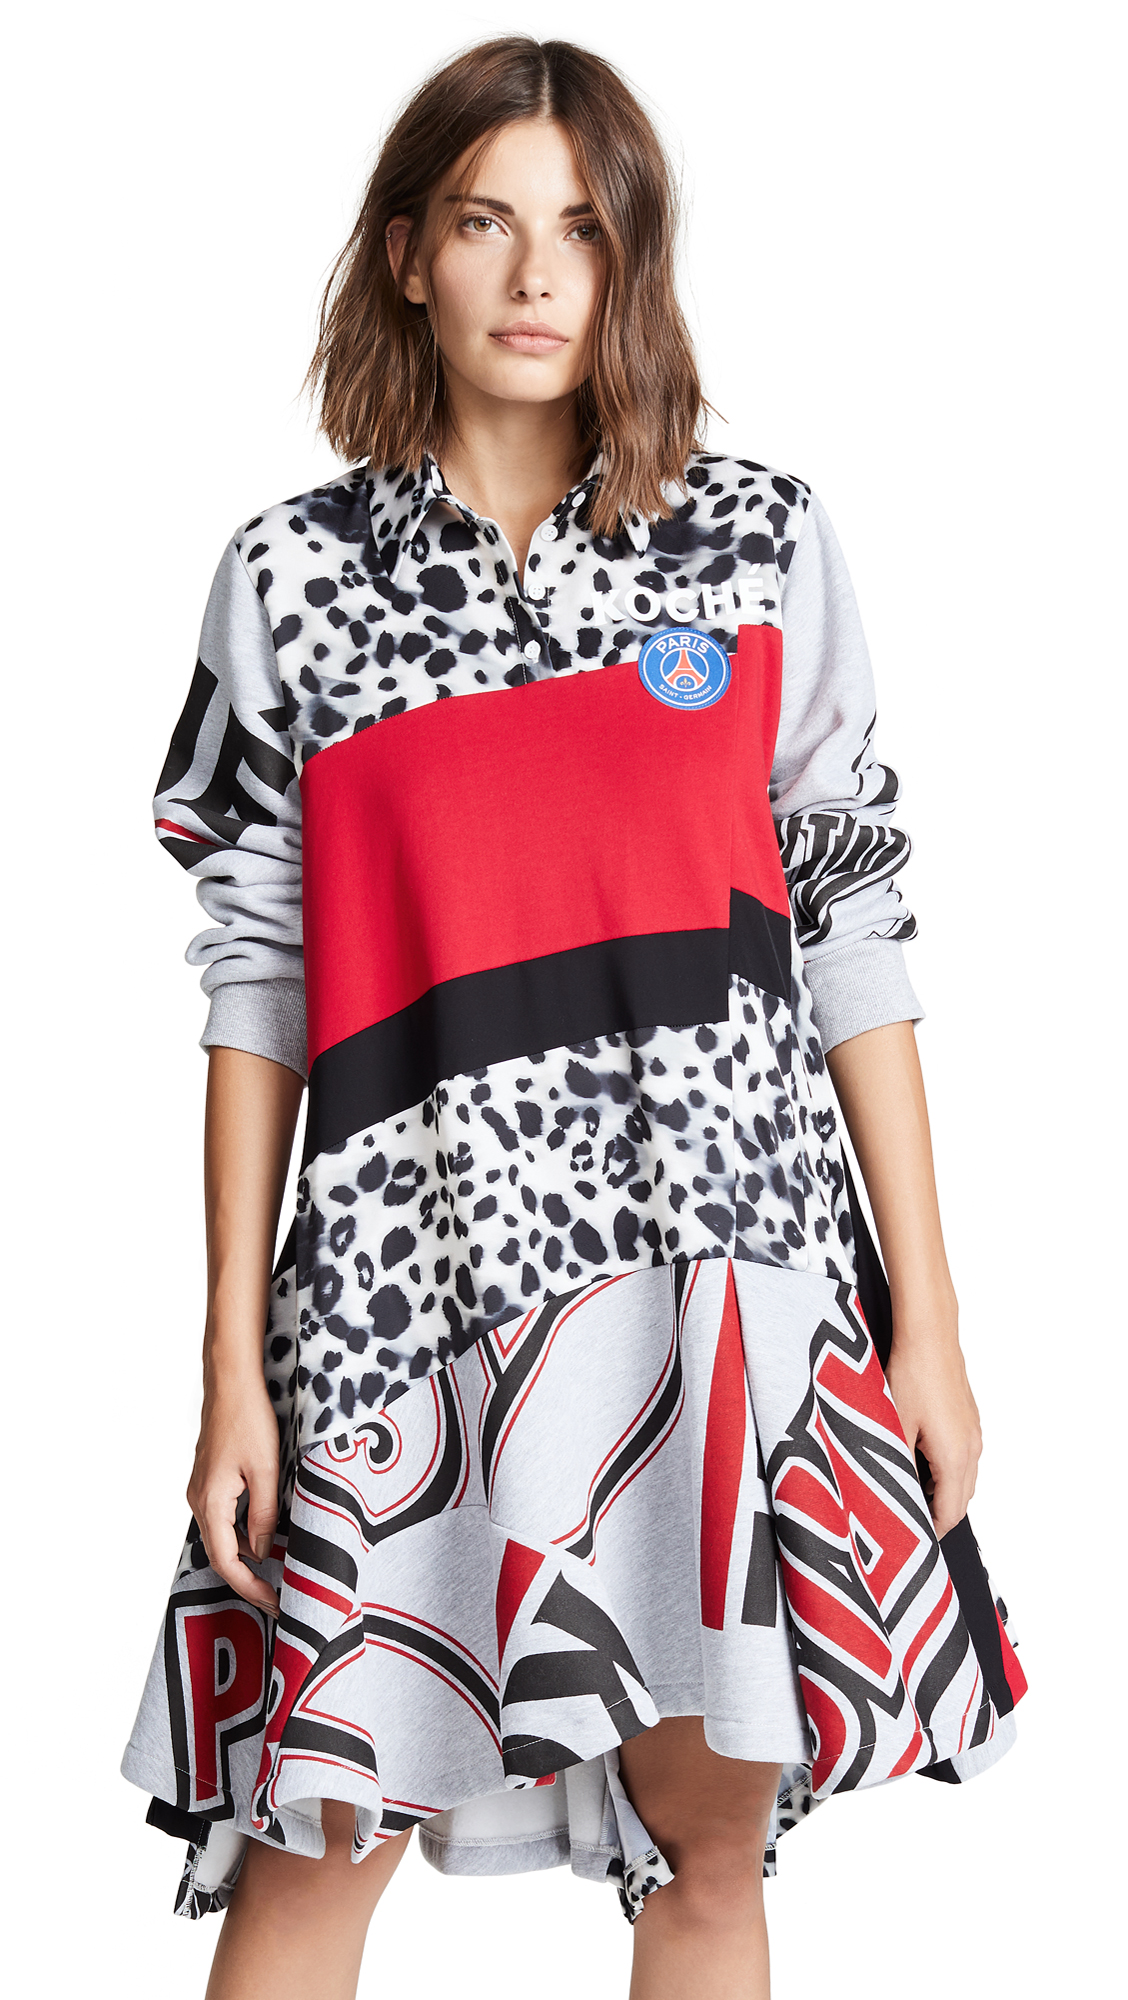 Koche Polo Girl Dress In Natural Leopard/Red/Black